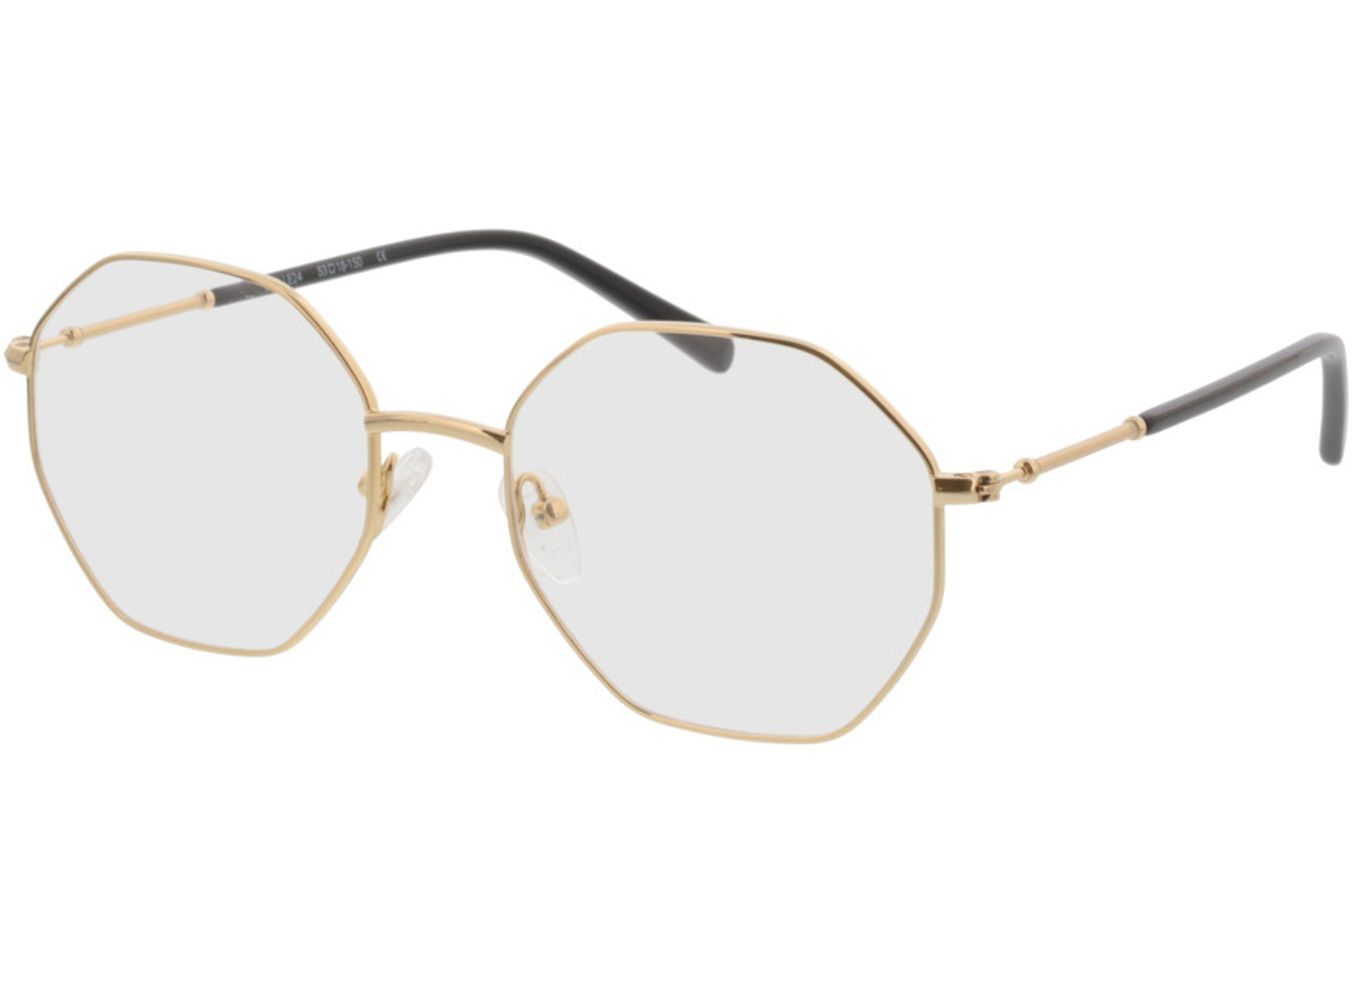 4153-singlevision-0000 Comox-gold Gleitsichtbrille, Vollrand, Eckig Brille24 Collection